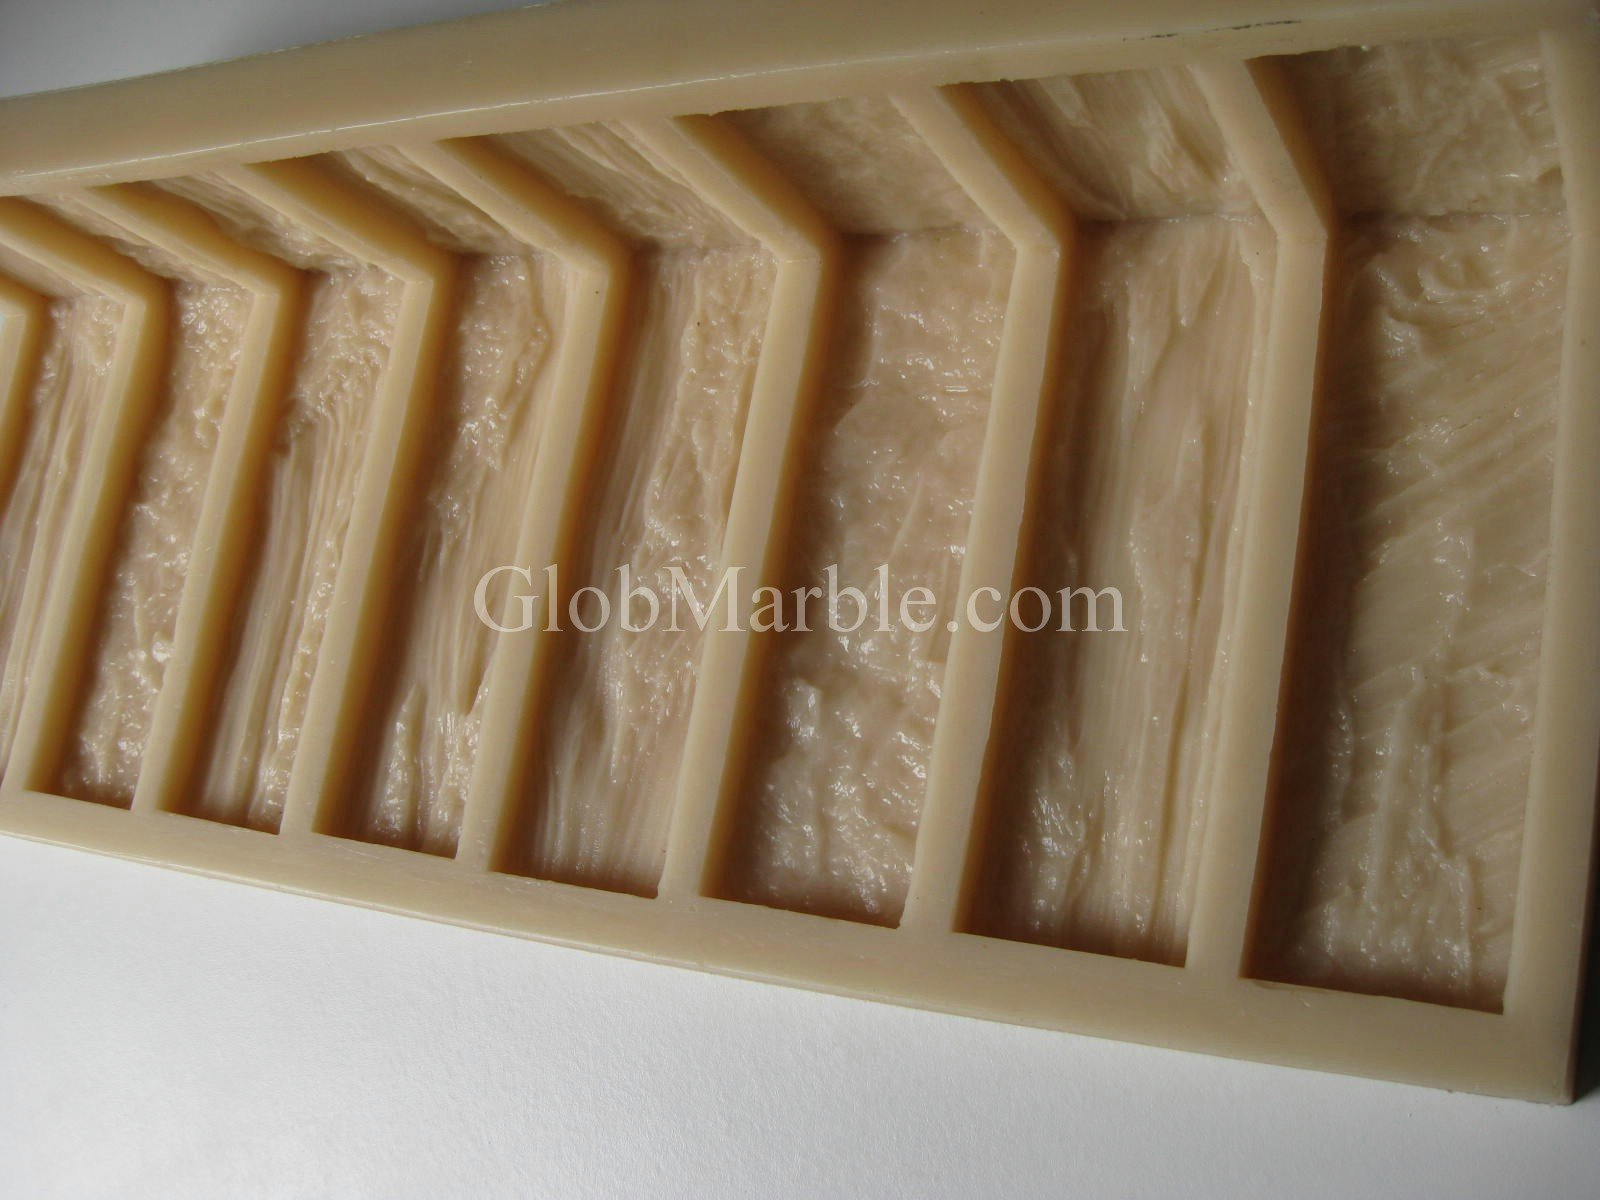 Antique Wood Stone Mold BS 811/4 Corner by GlobMarble